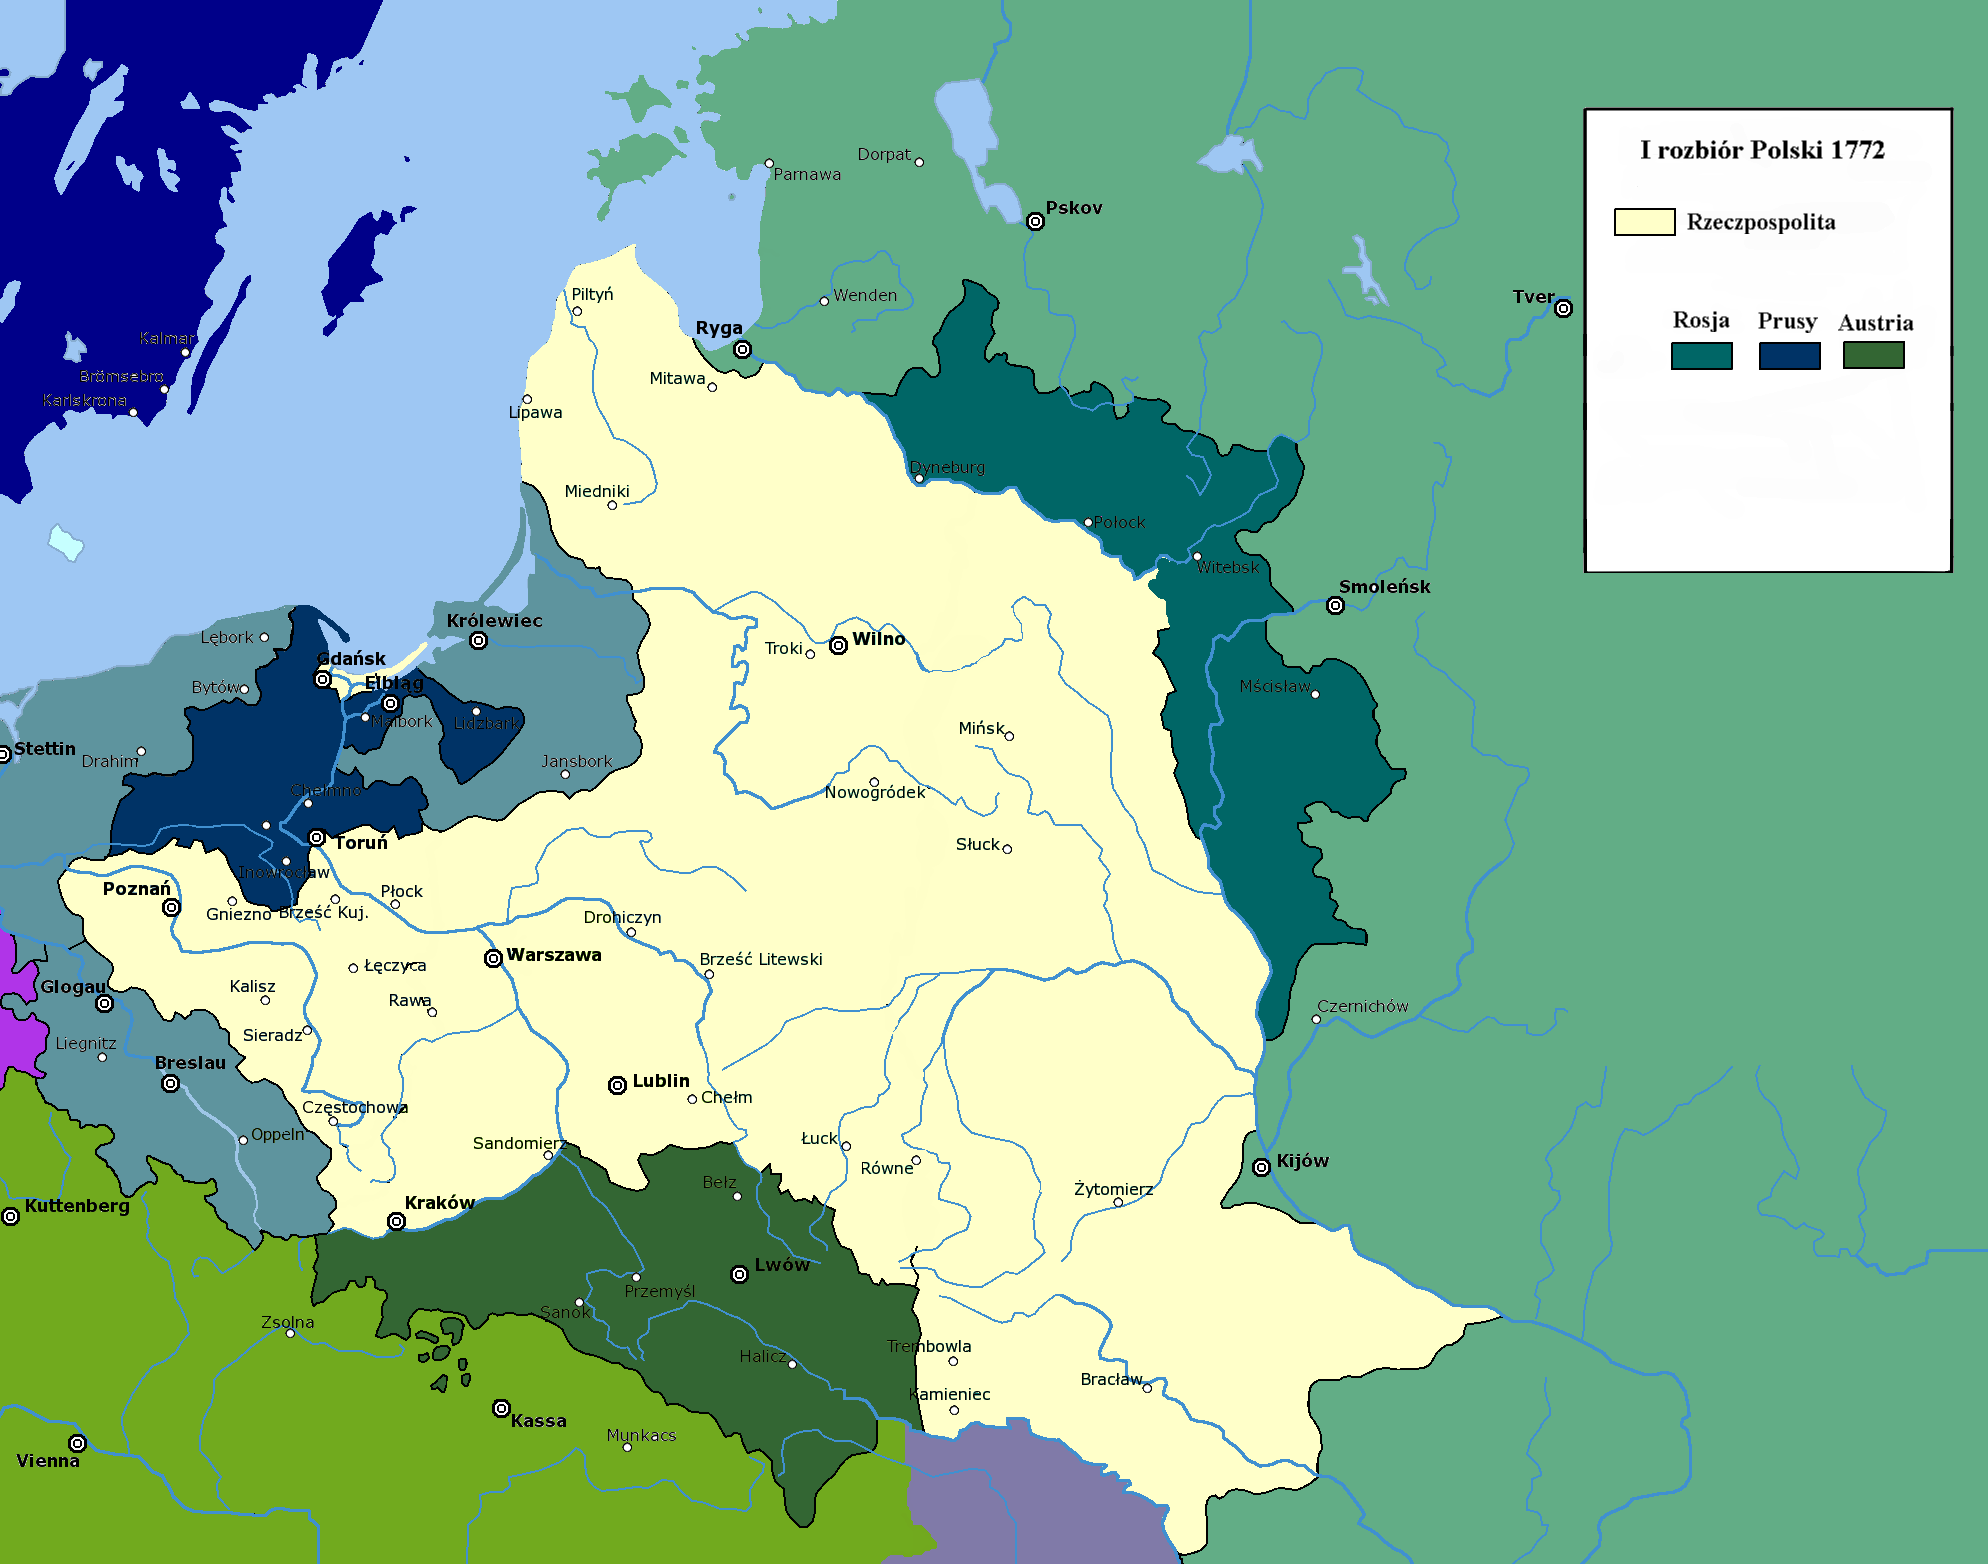 First_Partition_of_Poland1772.png